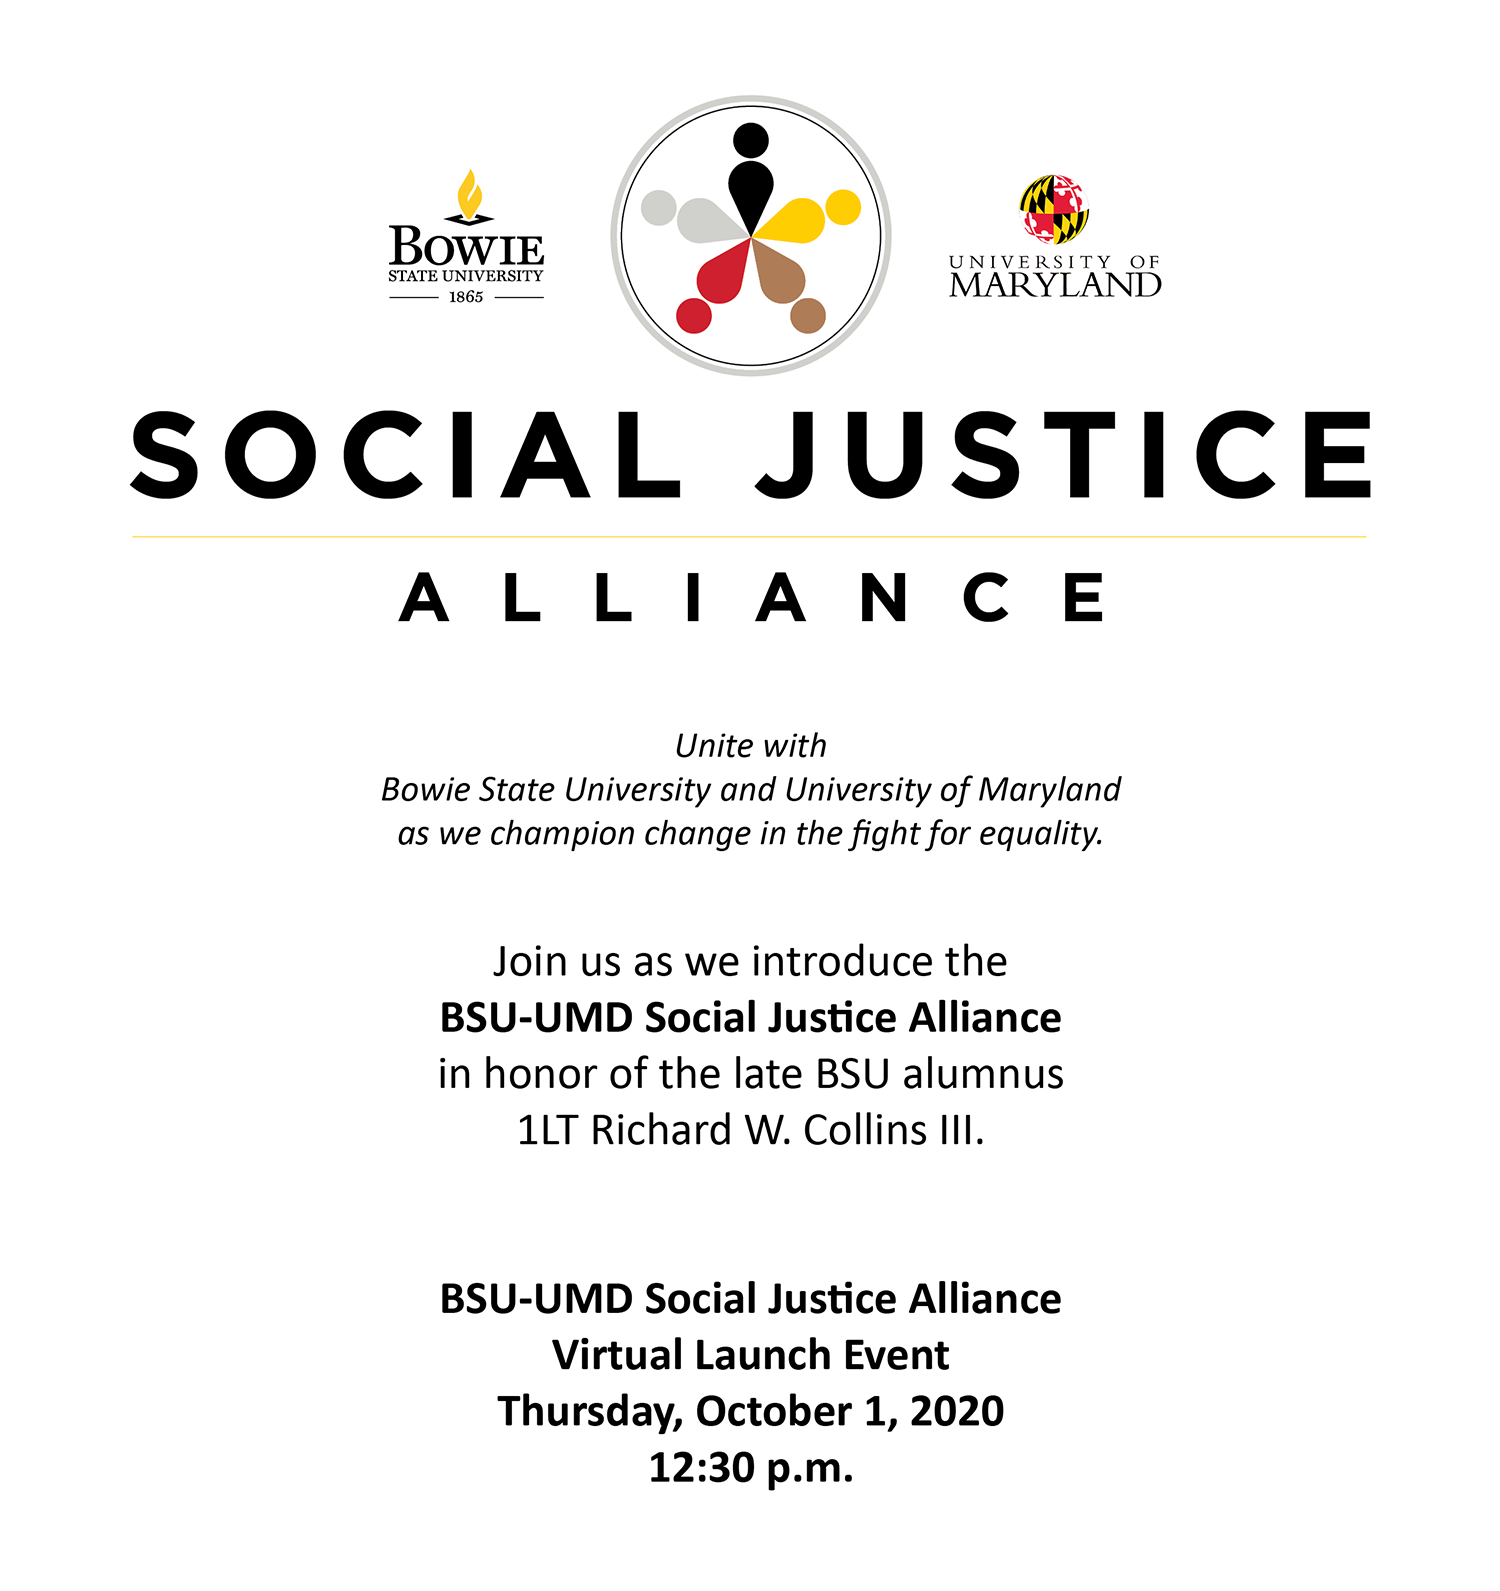 Social Justice Alliance Virtual Launch Event October 1st, 2020 at 12:30 pm